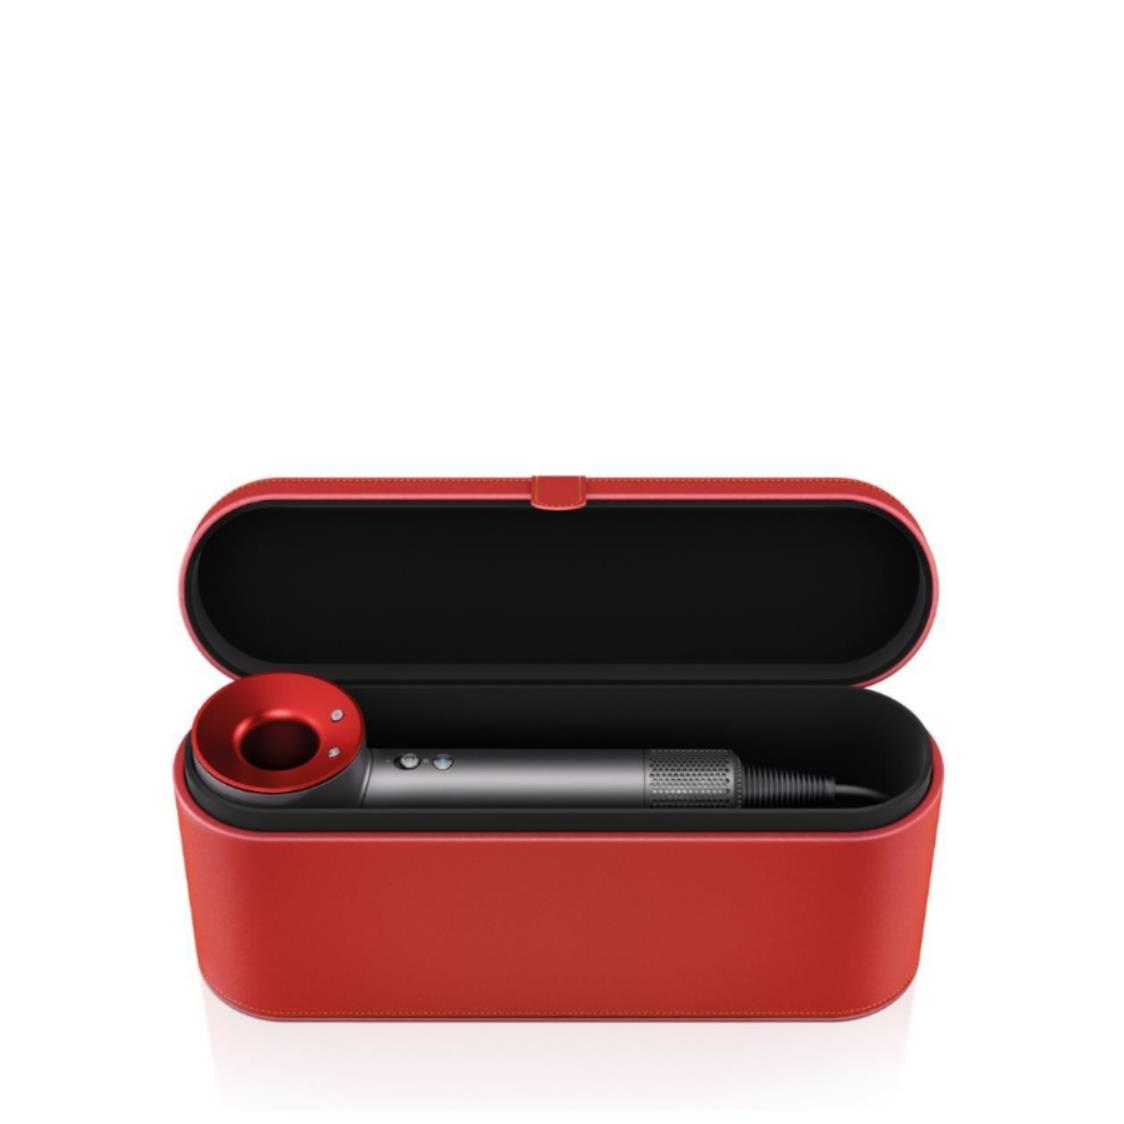 Dyson Supersonic IronRed with Red Case